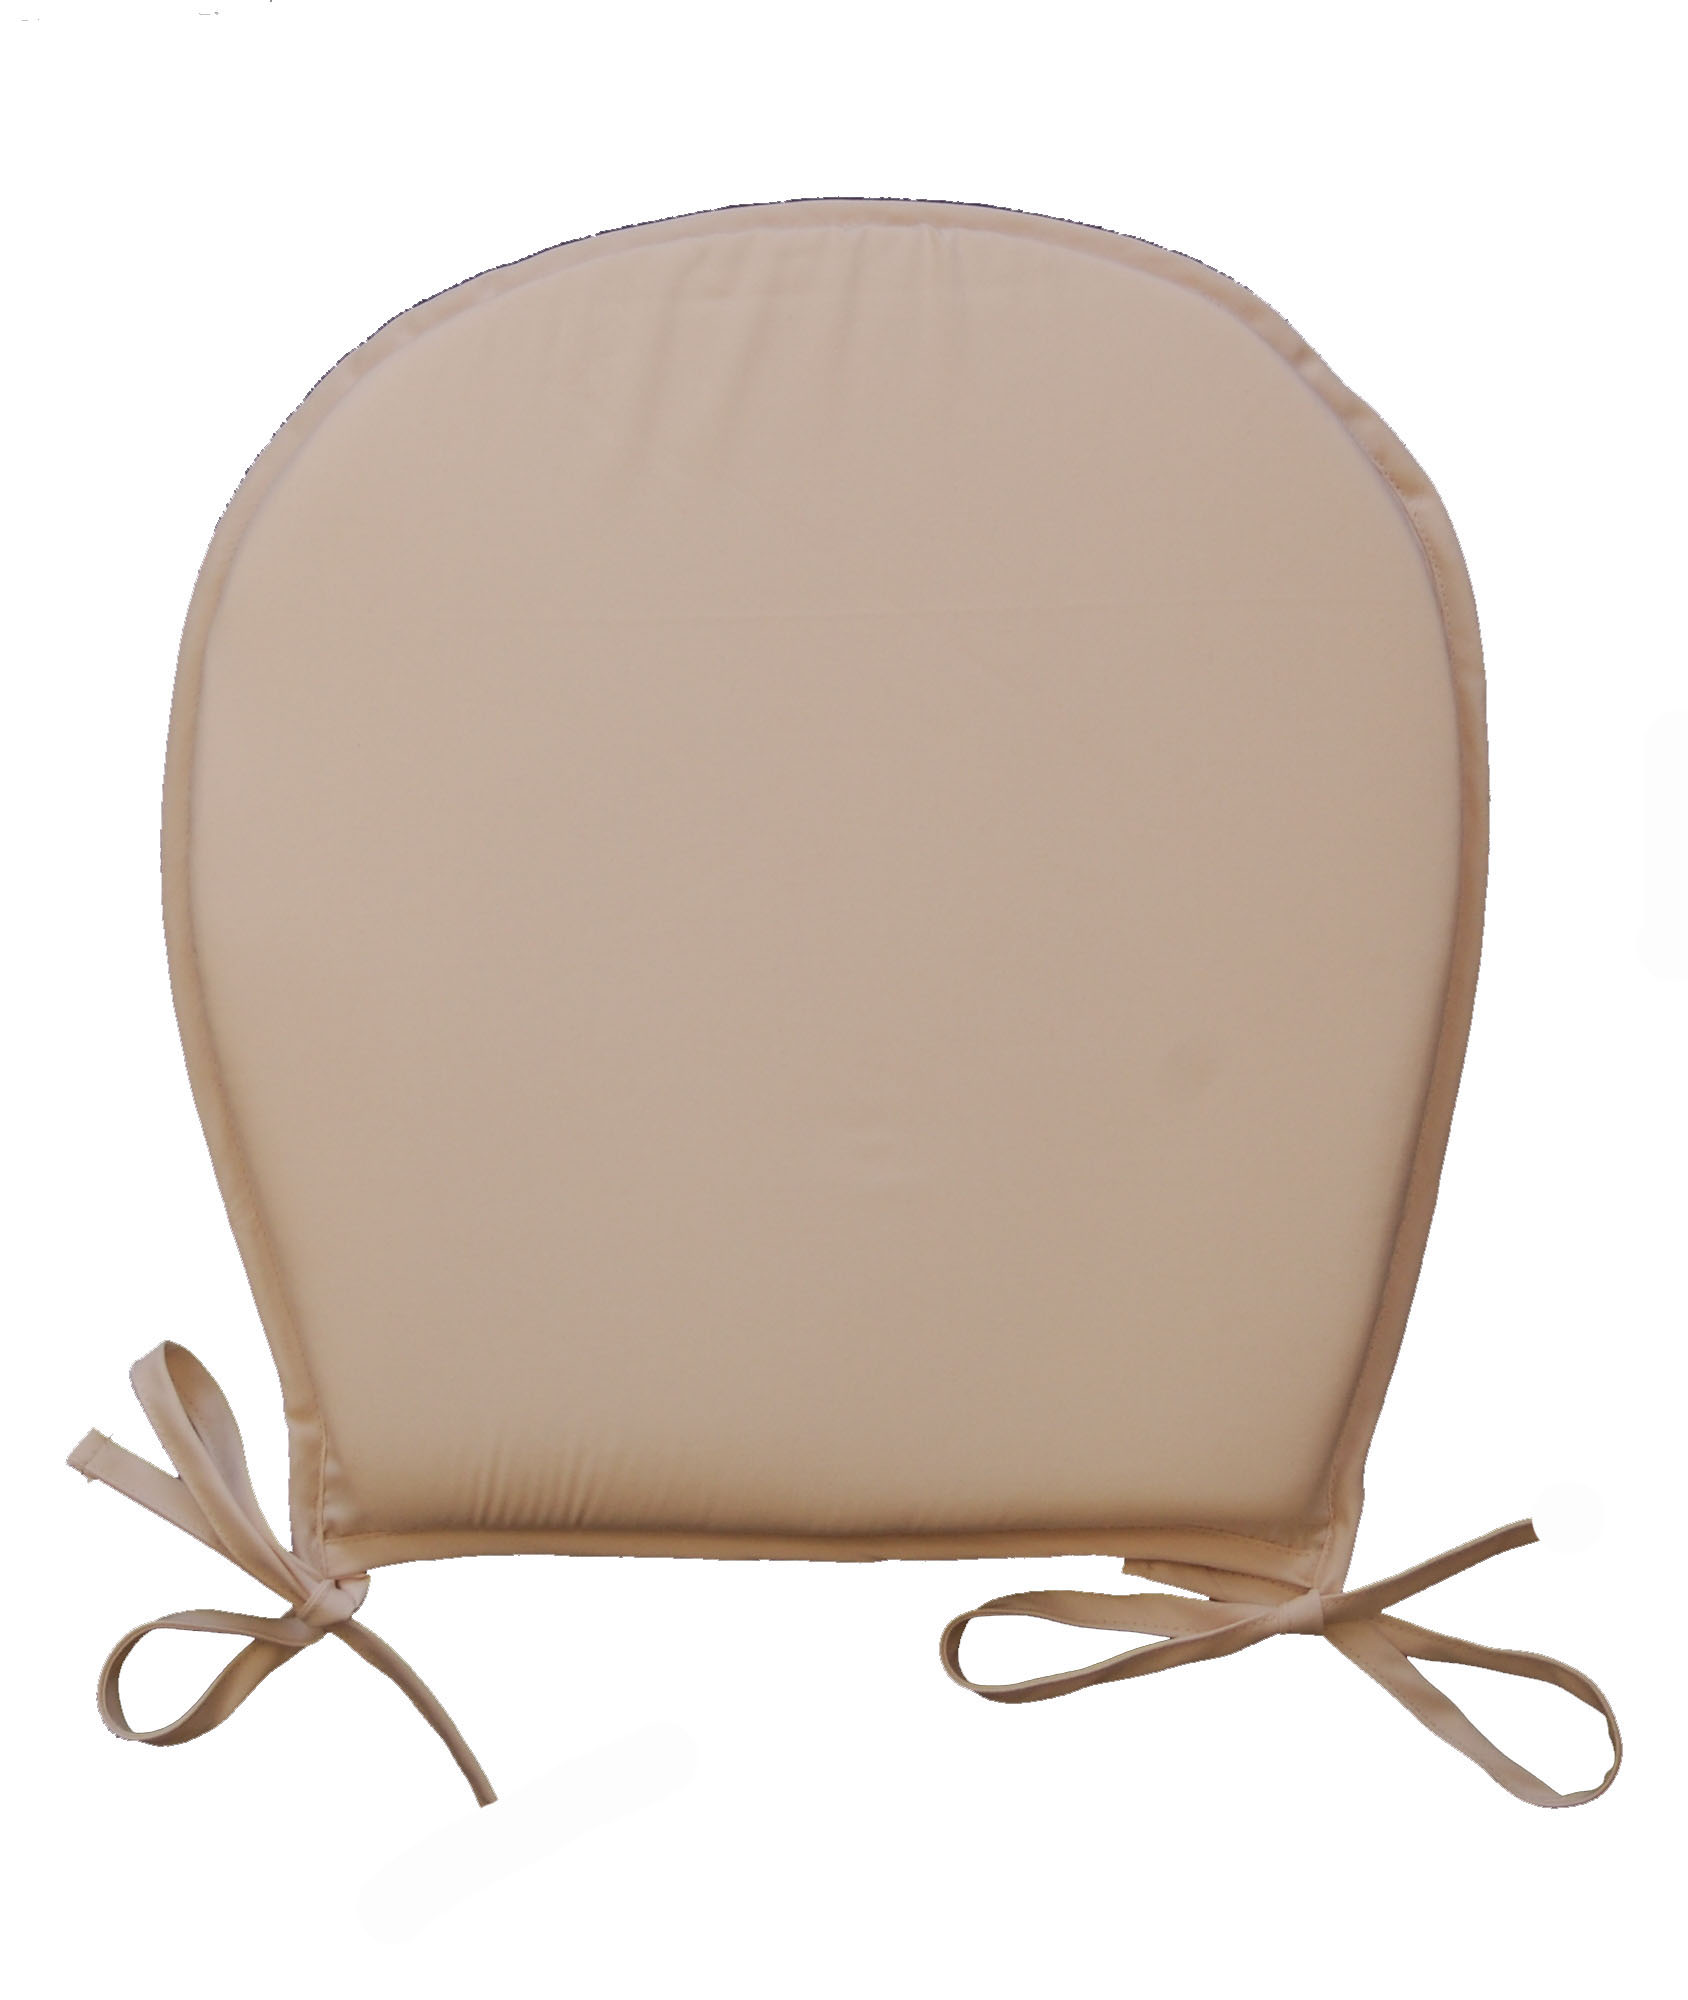 seat cushions for kitchen chairs kitchen chair seat cushions Seat cushions for kitchen chairs Photo 6